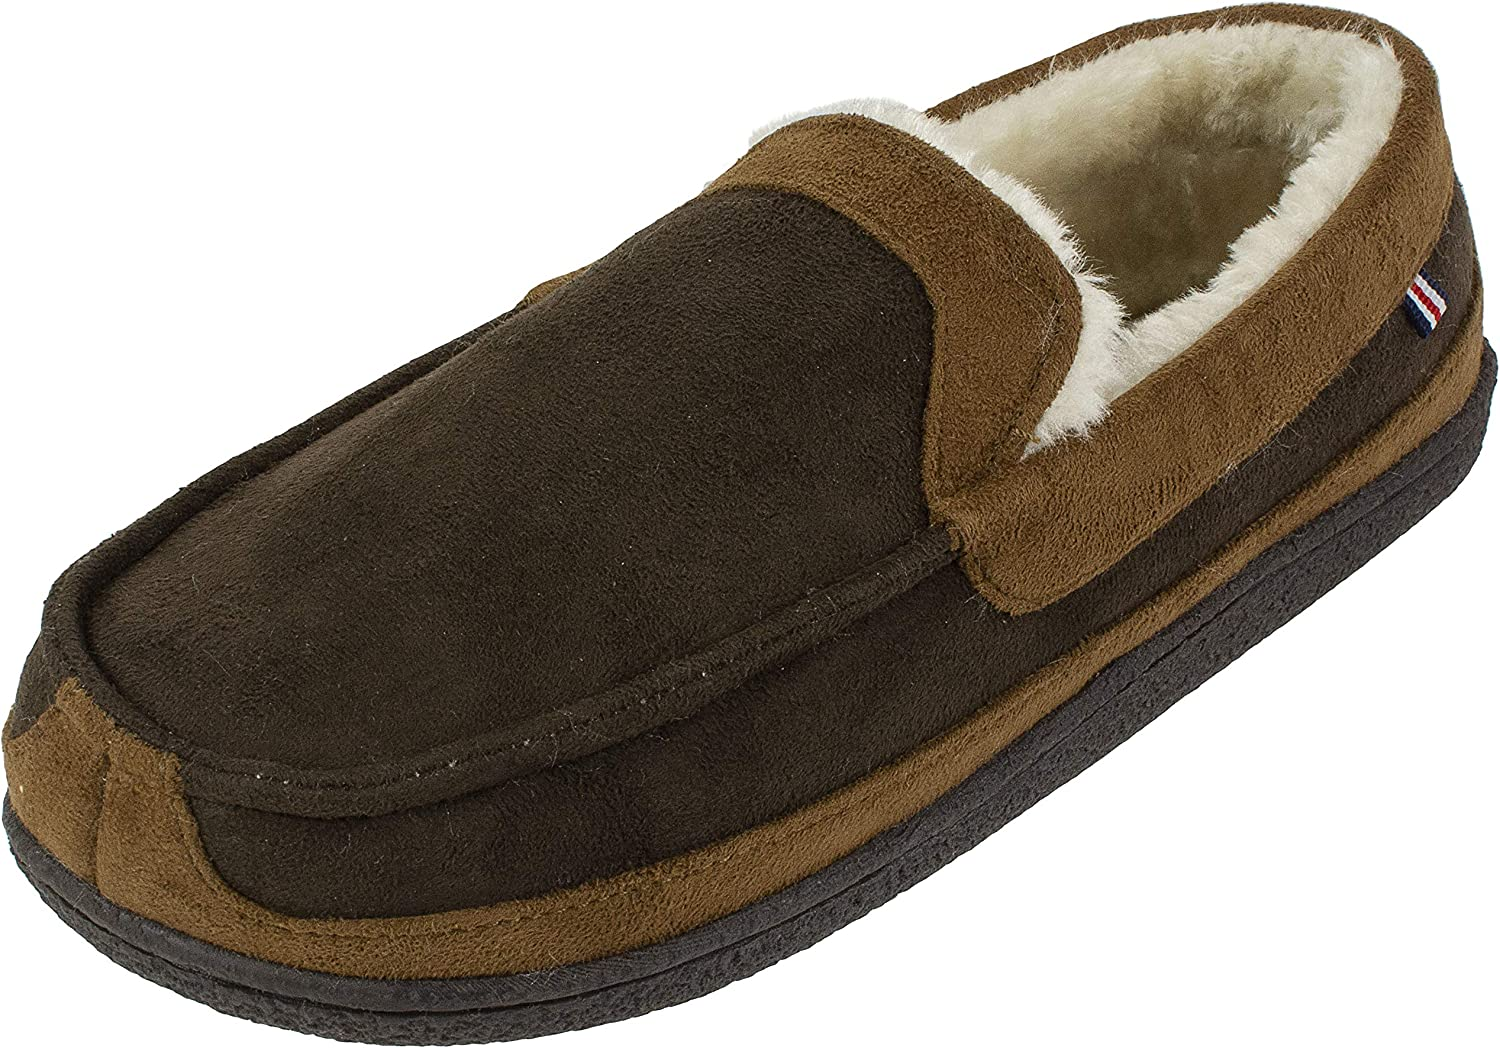 The Best Home Slippers Men  Rated